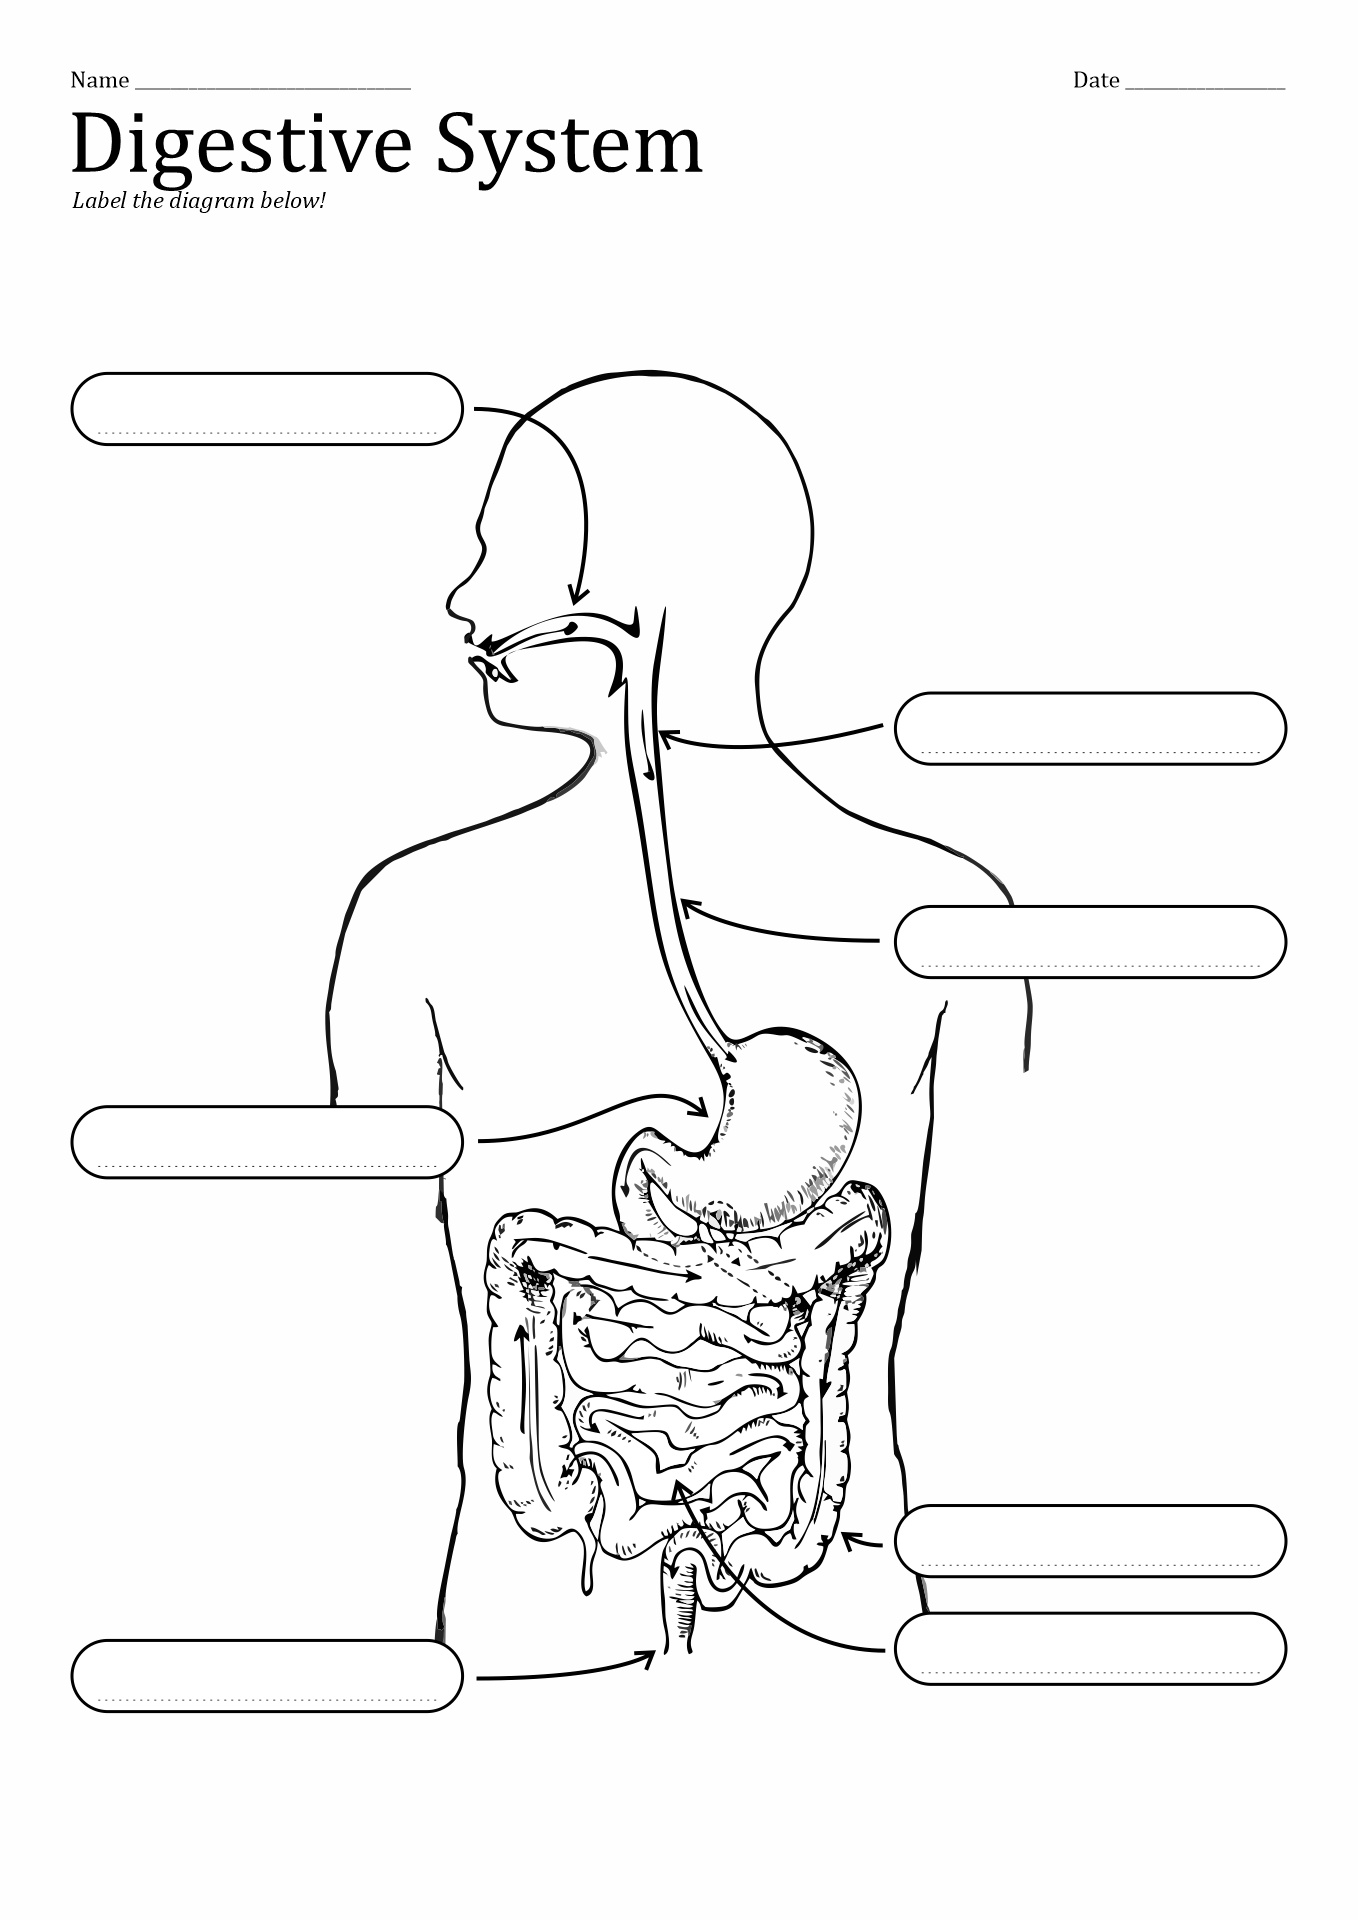 Ruminant Digestive System Unlabled